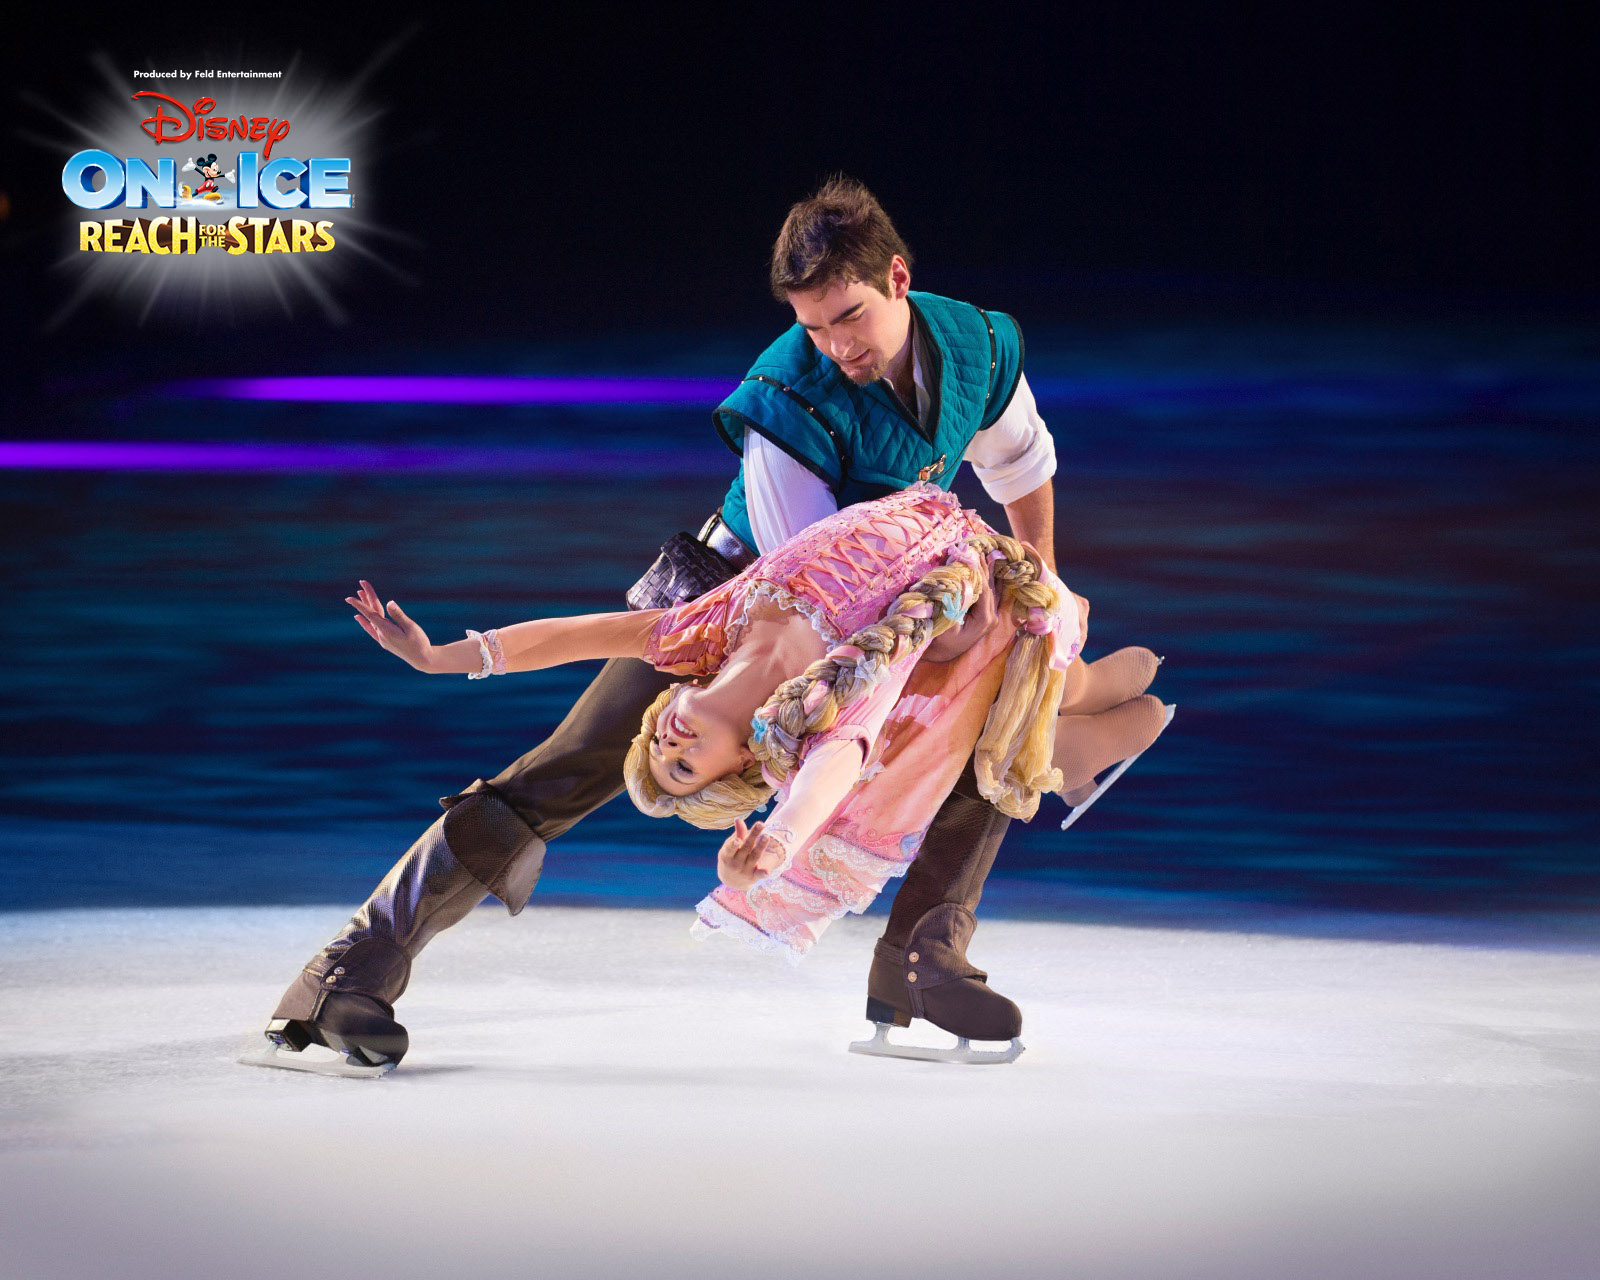 Disney On Ice - Reach For The Stars 2